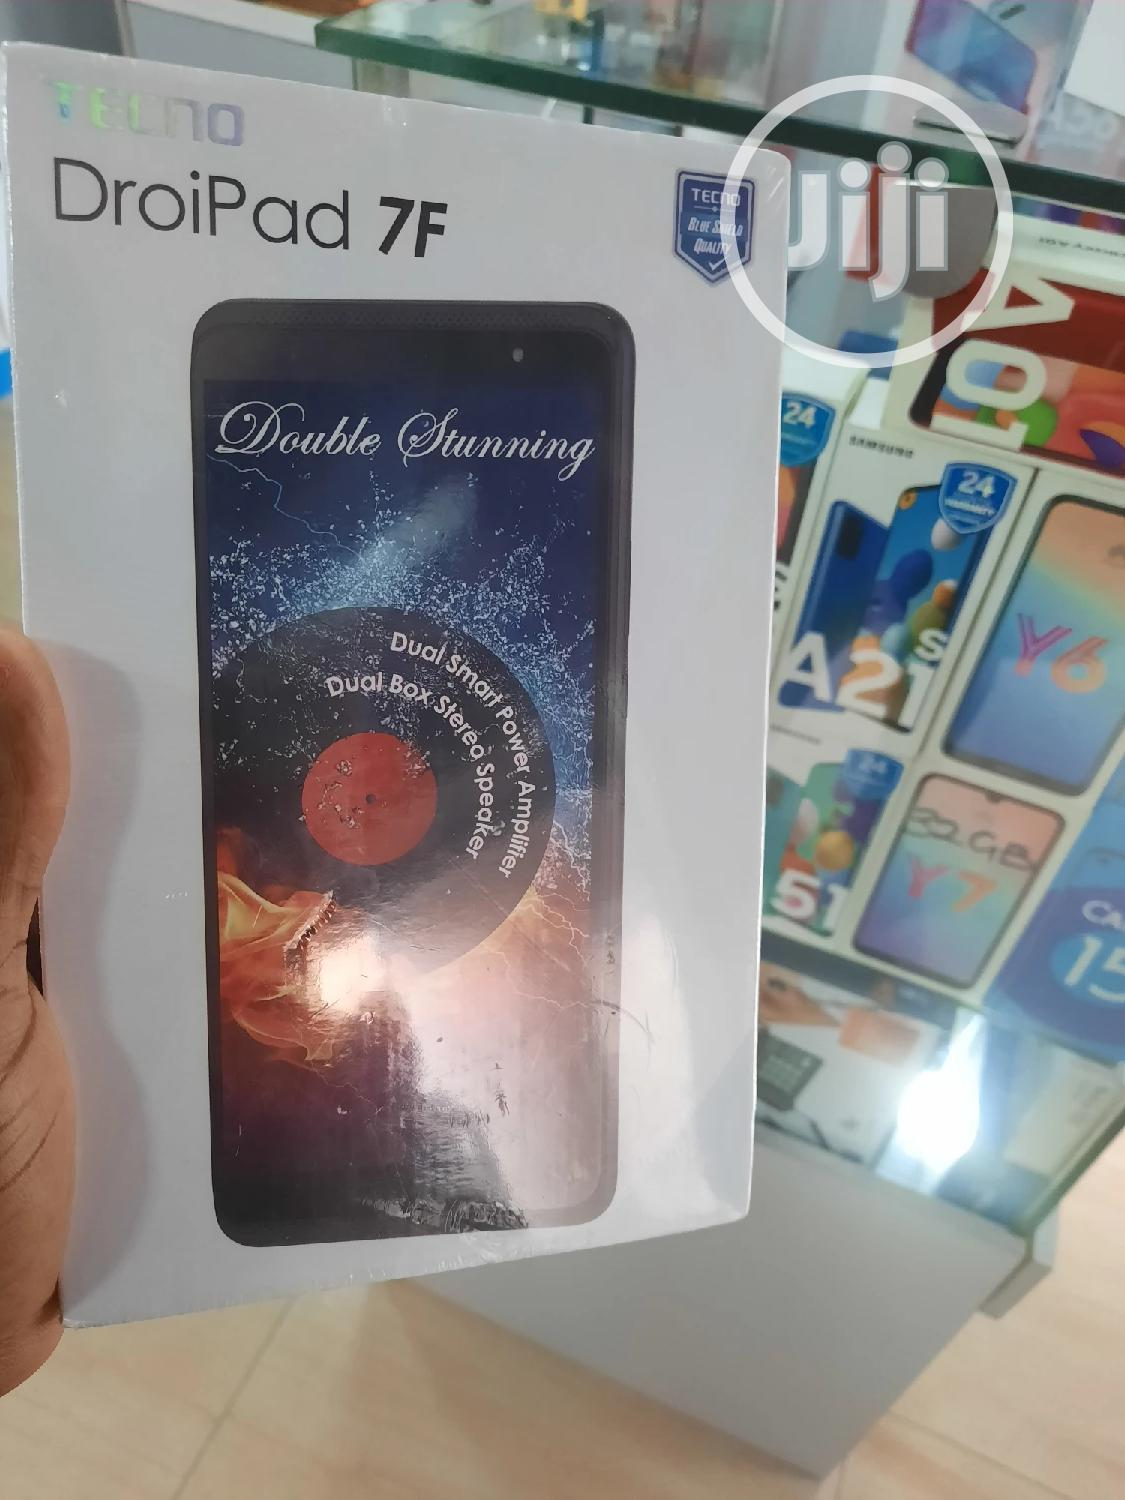 New Tecno DroiPad 7E 16 GB | Tablets for sale in Port-Harcourt, Rivers State, Nigeria